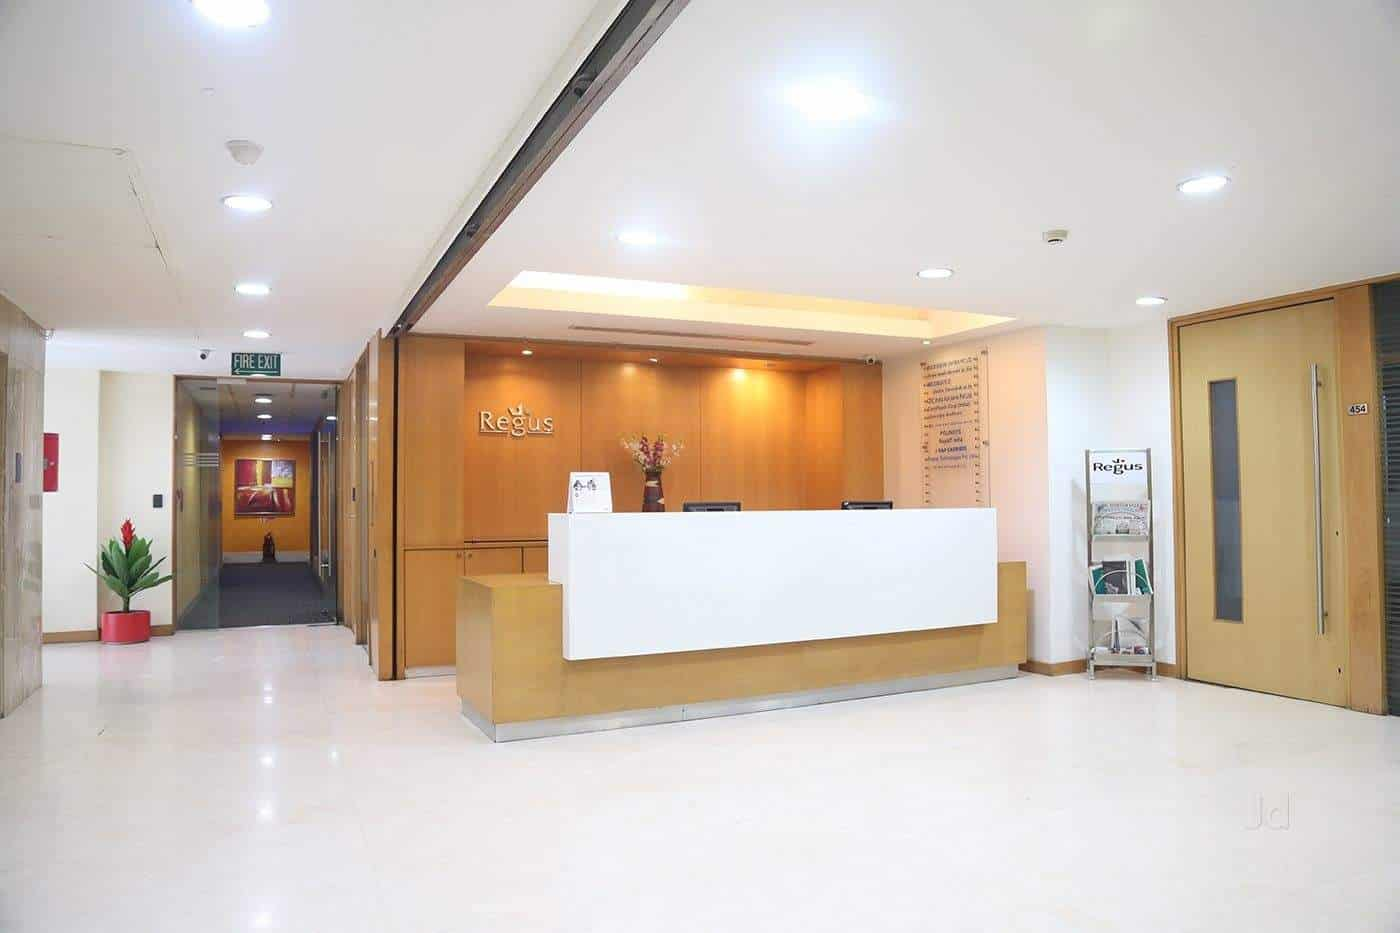 Regus Business Centre, Andheri East - Business Centres in